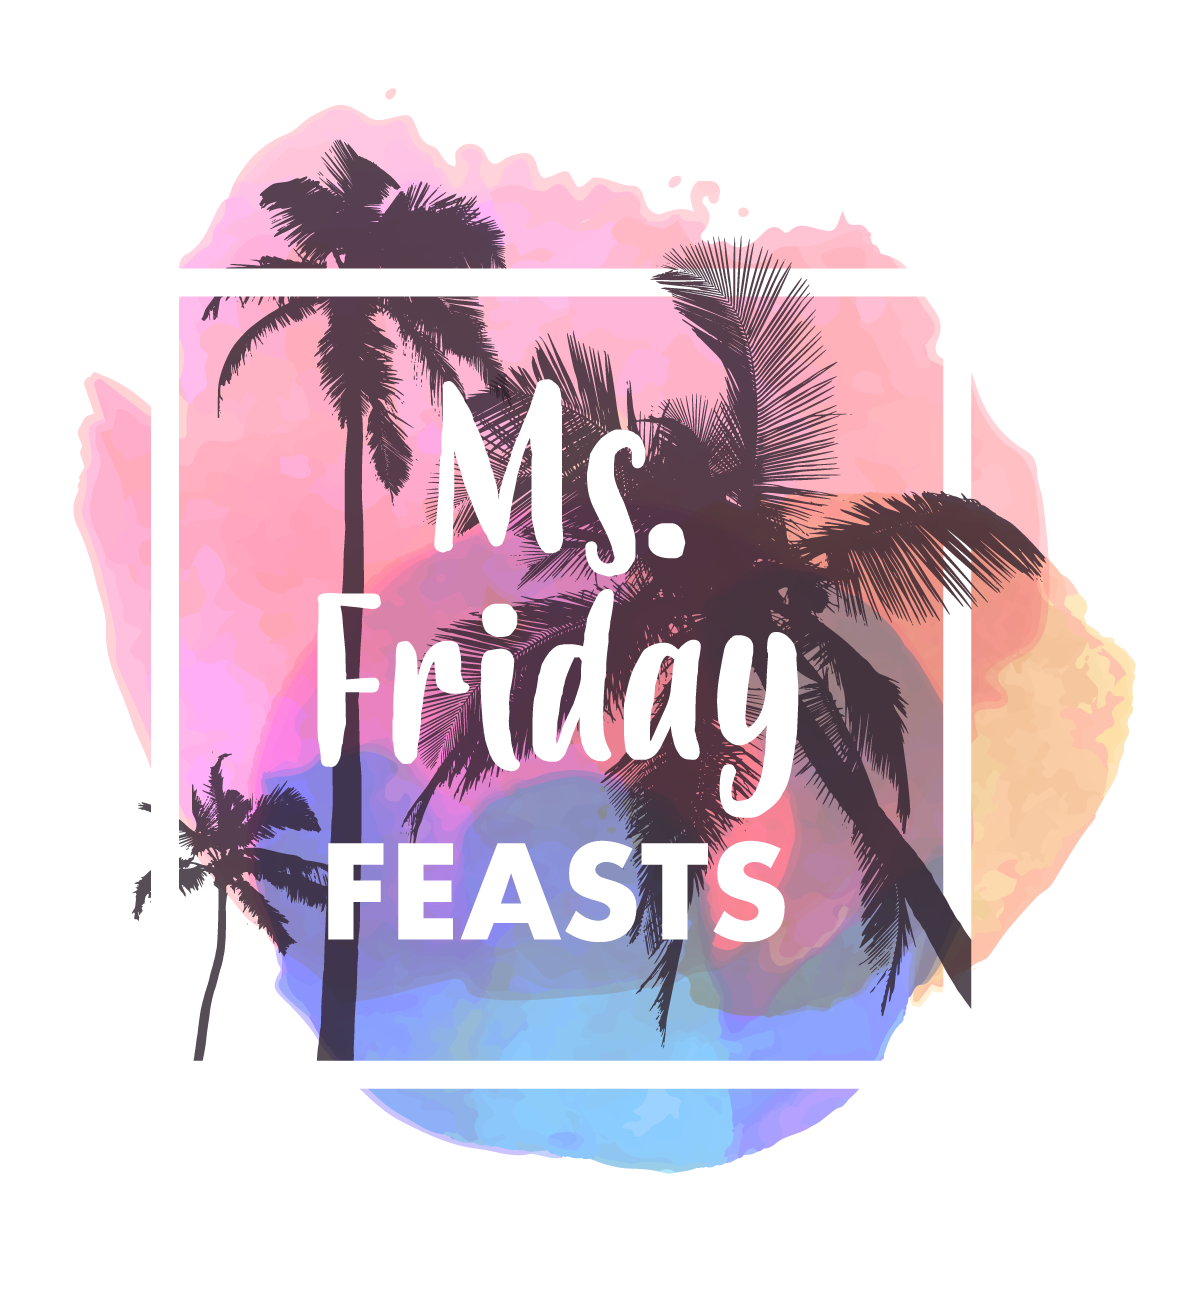 Ms Friday feasts.